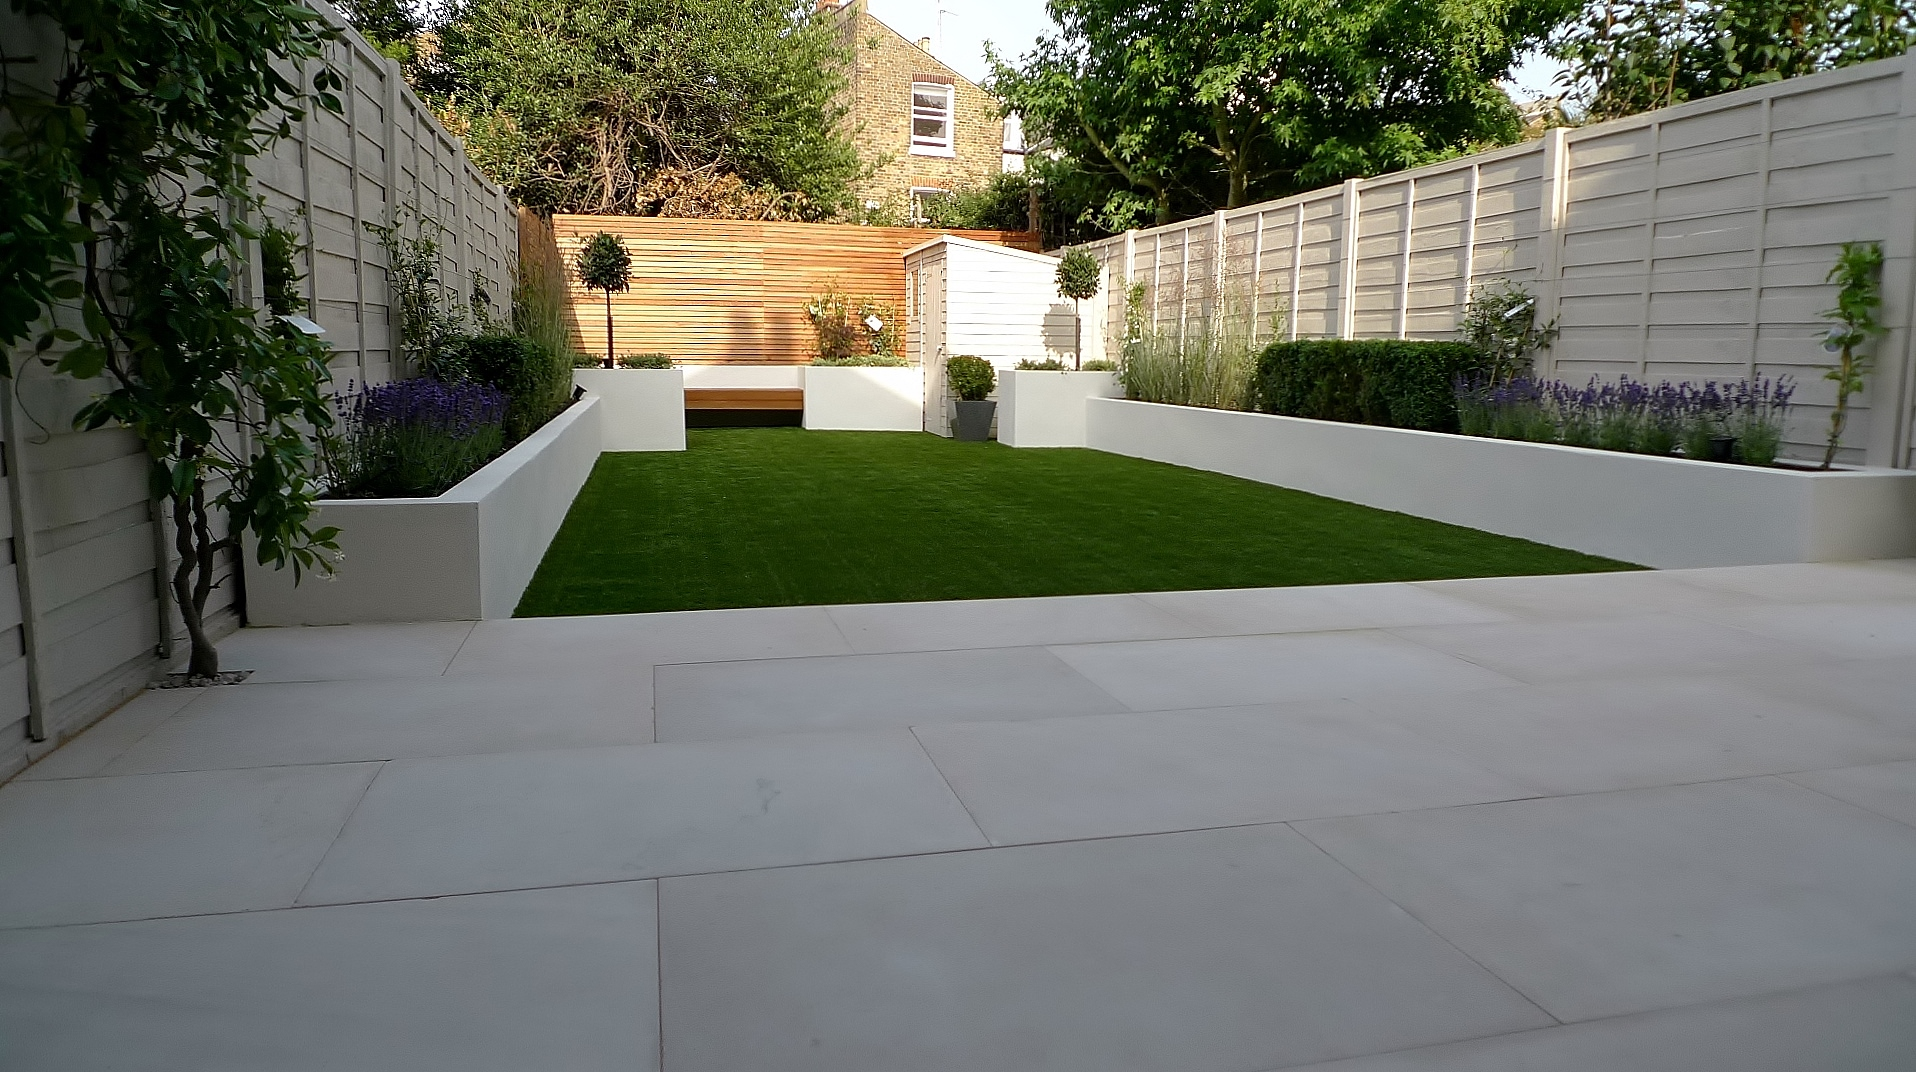 Anewgarden london garden blog for Small patio design plans